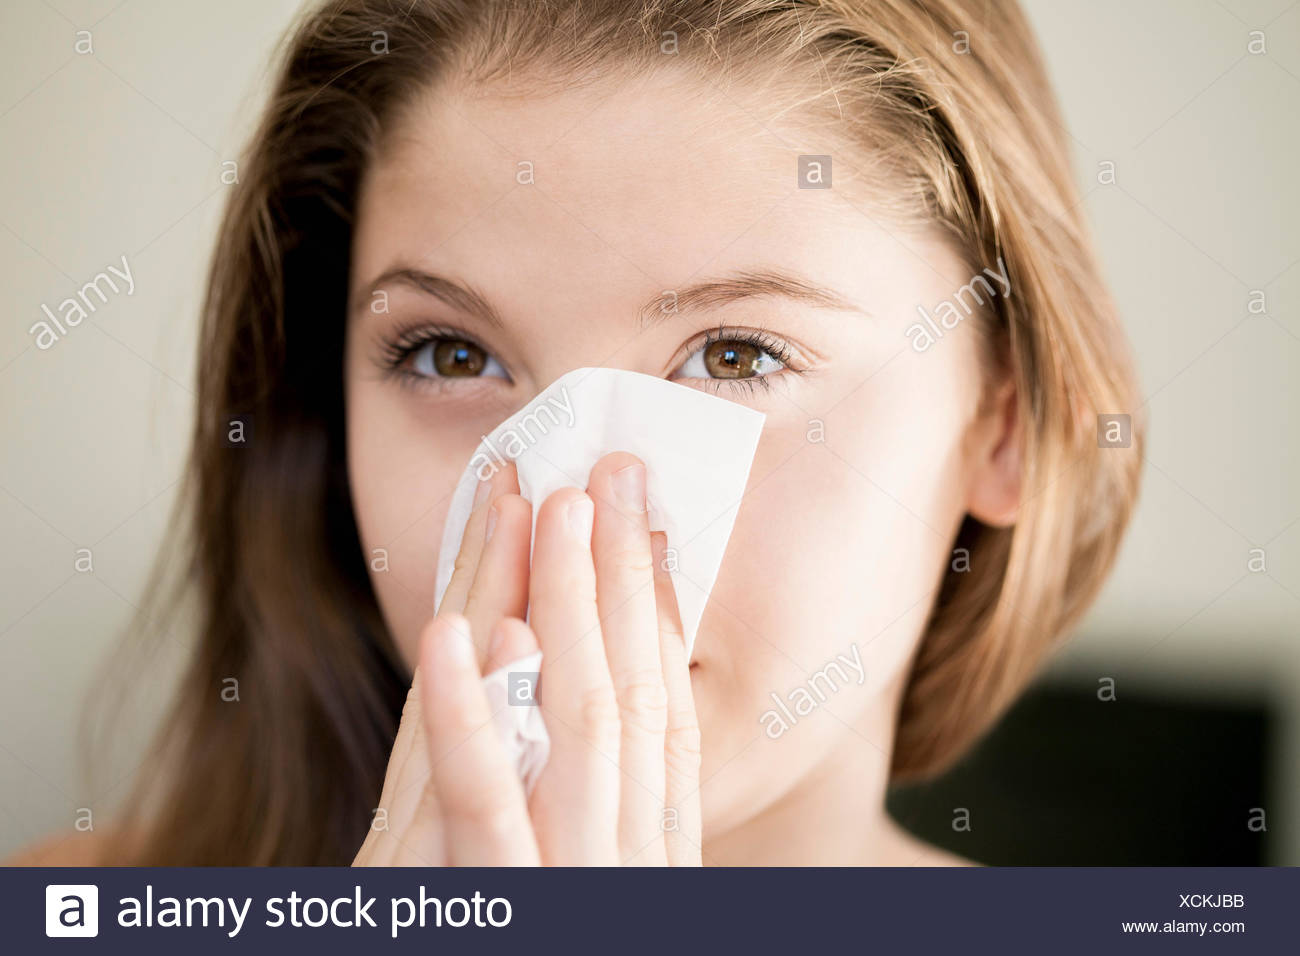 Girl wiping her nose with handkerchief - Stock Image